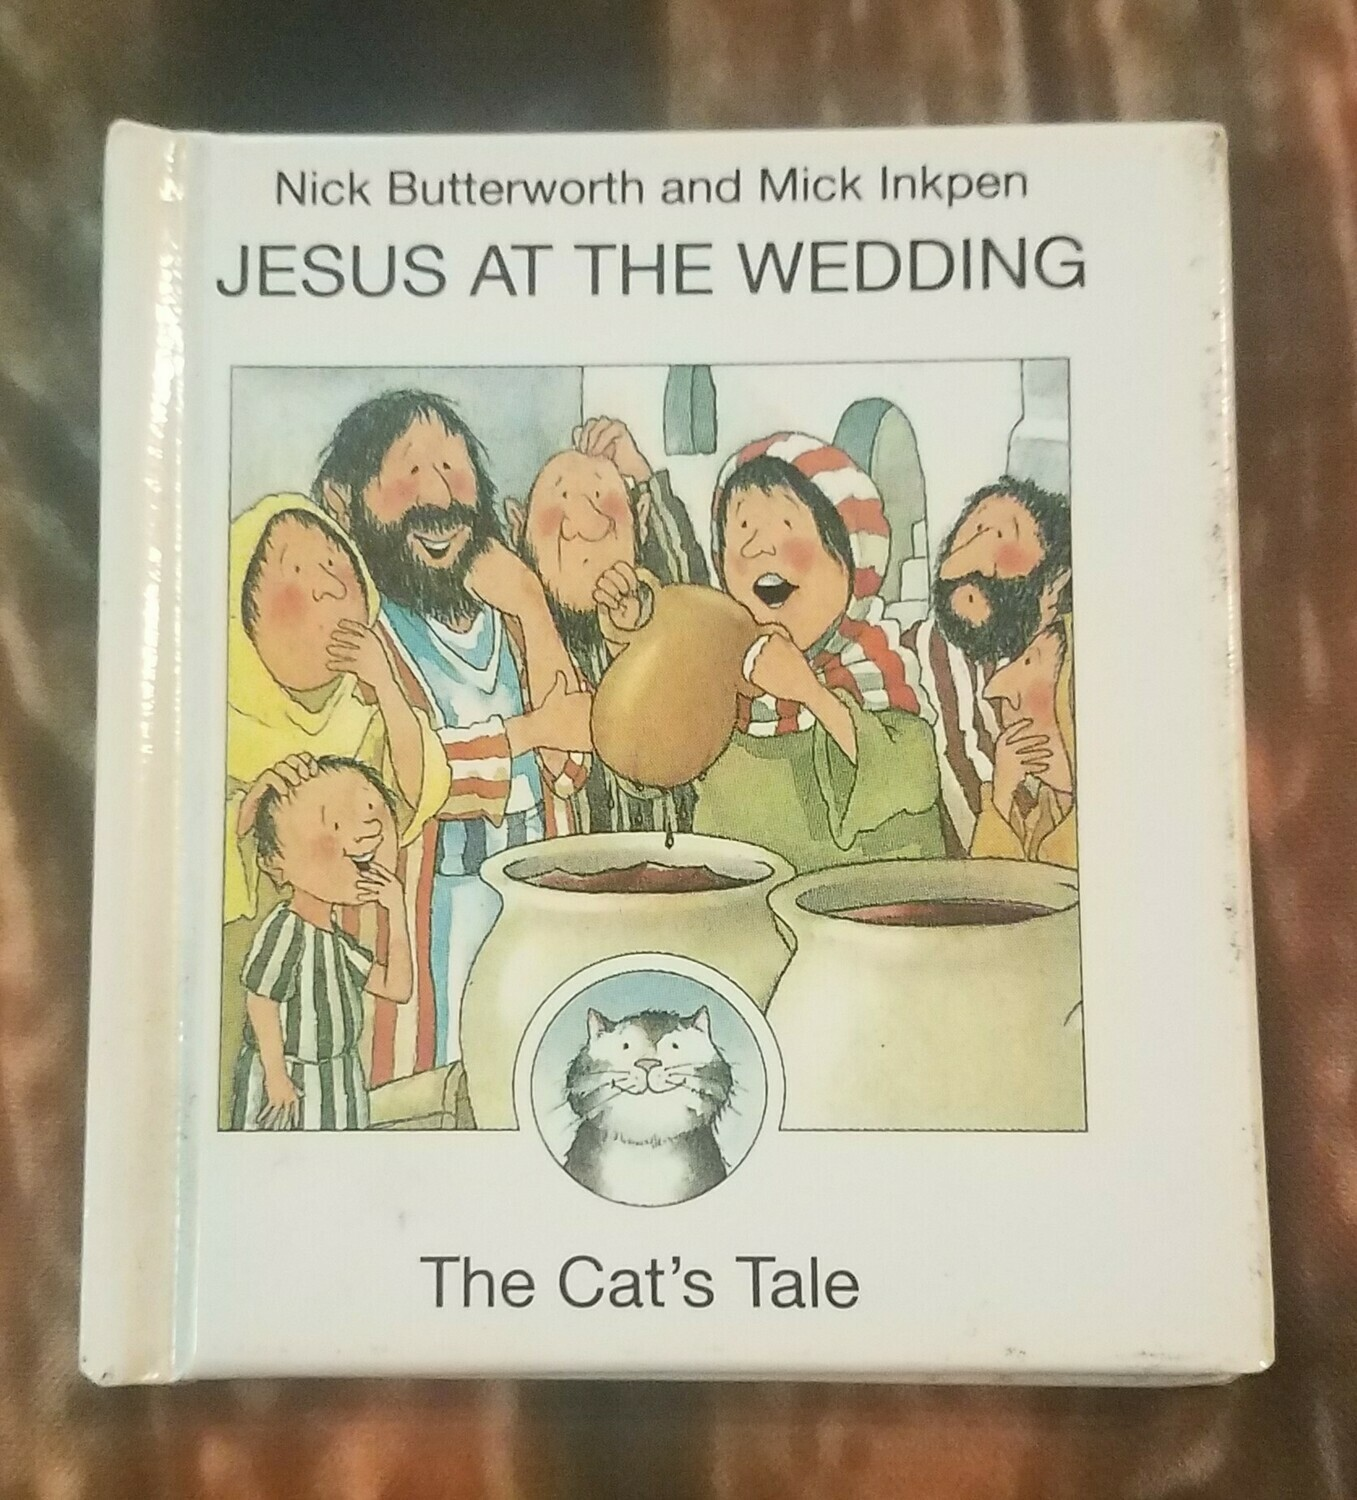 Jesus at The Wedding: The Cat's Tale by Nick Butterworth and Mick Inkpen